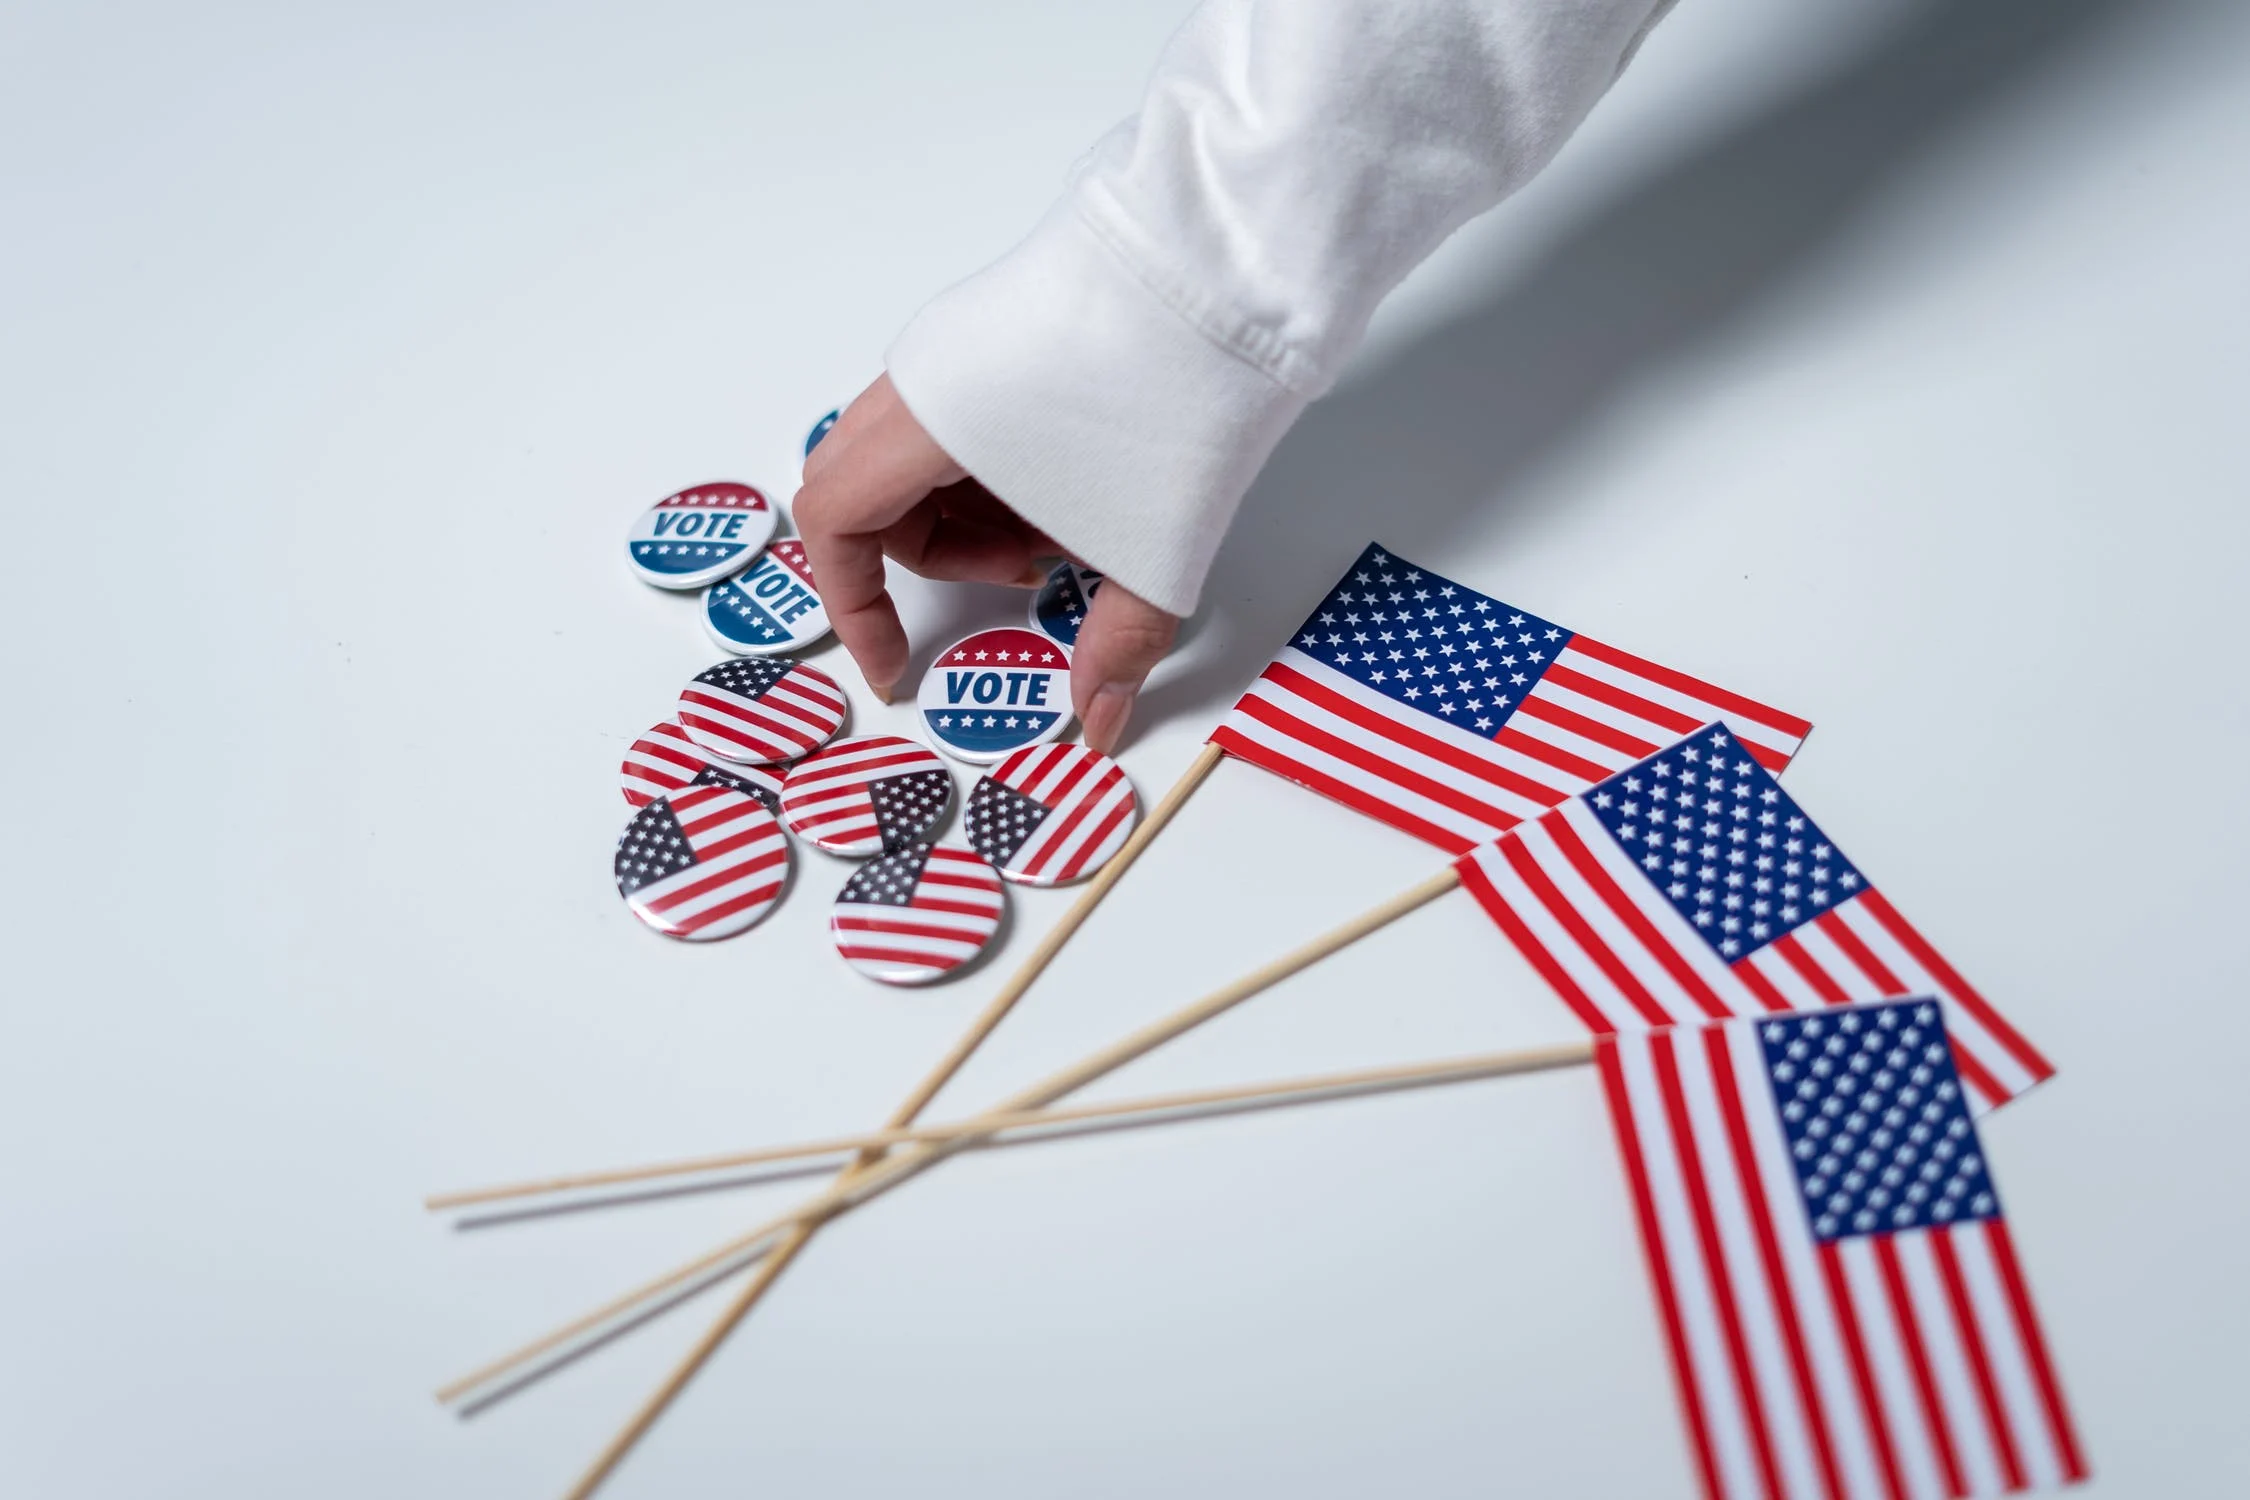 Hand picking up vote button next to small American flags on table